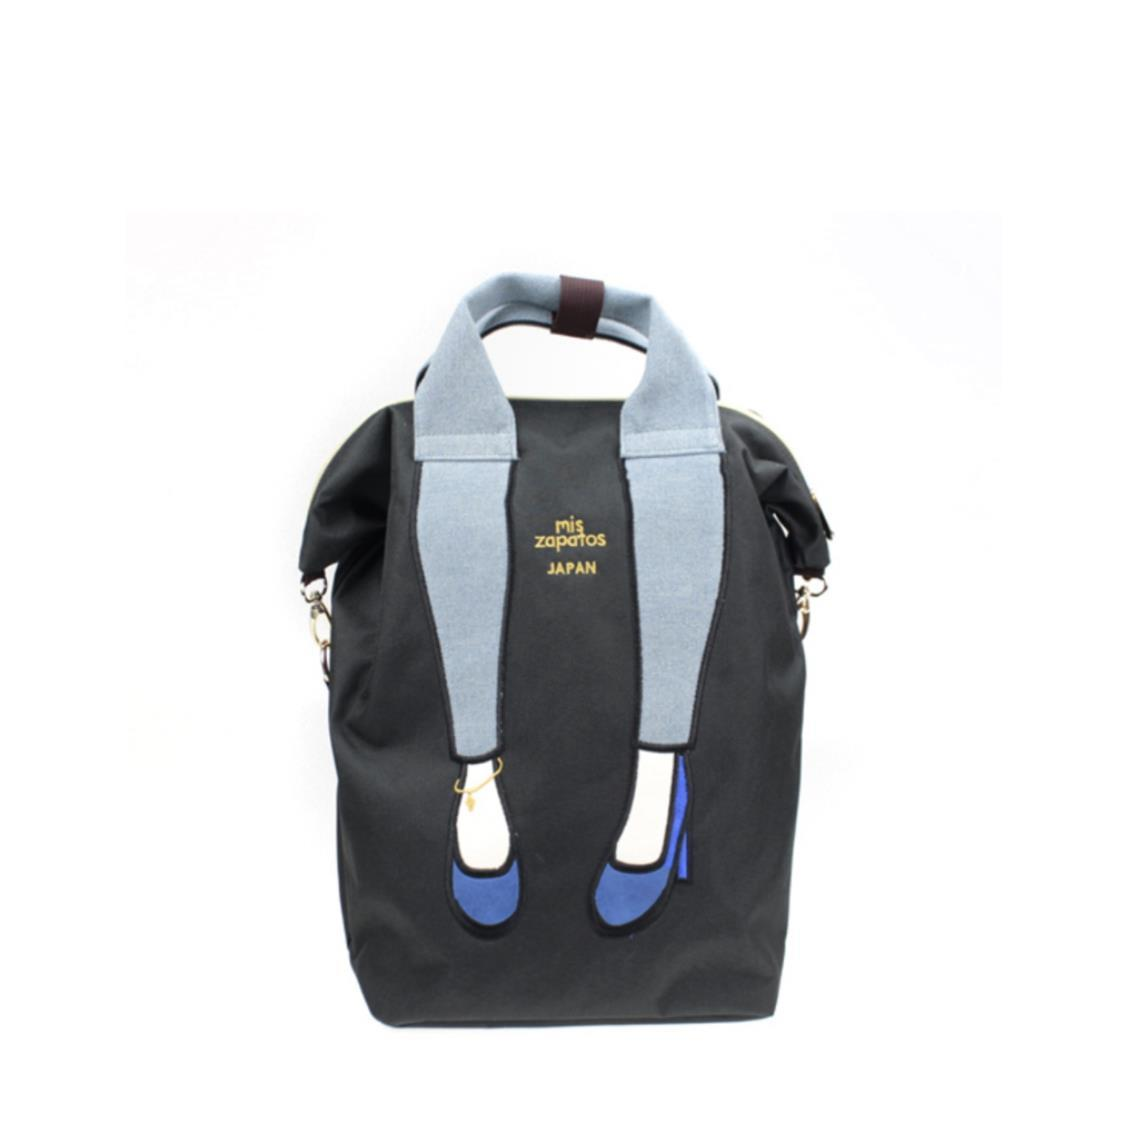 3-Way Jeans with High Heels Backpack Exclusive In Singapore Black